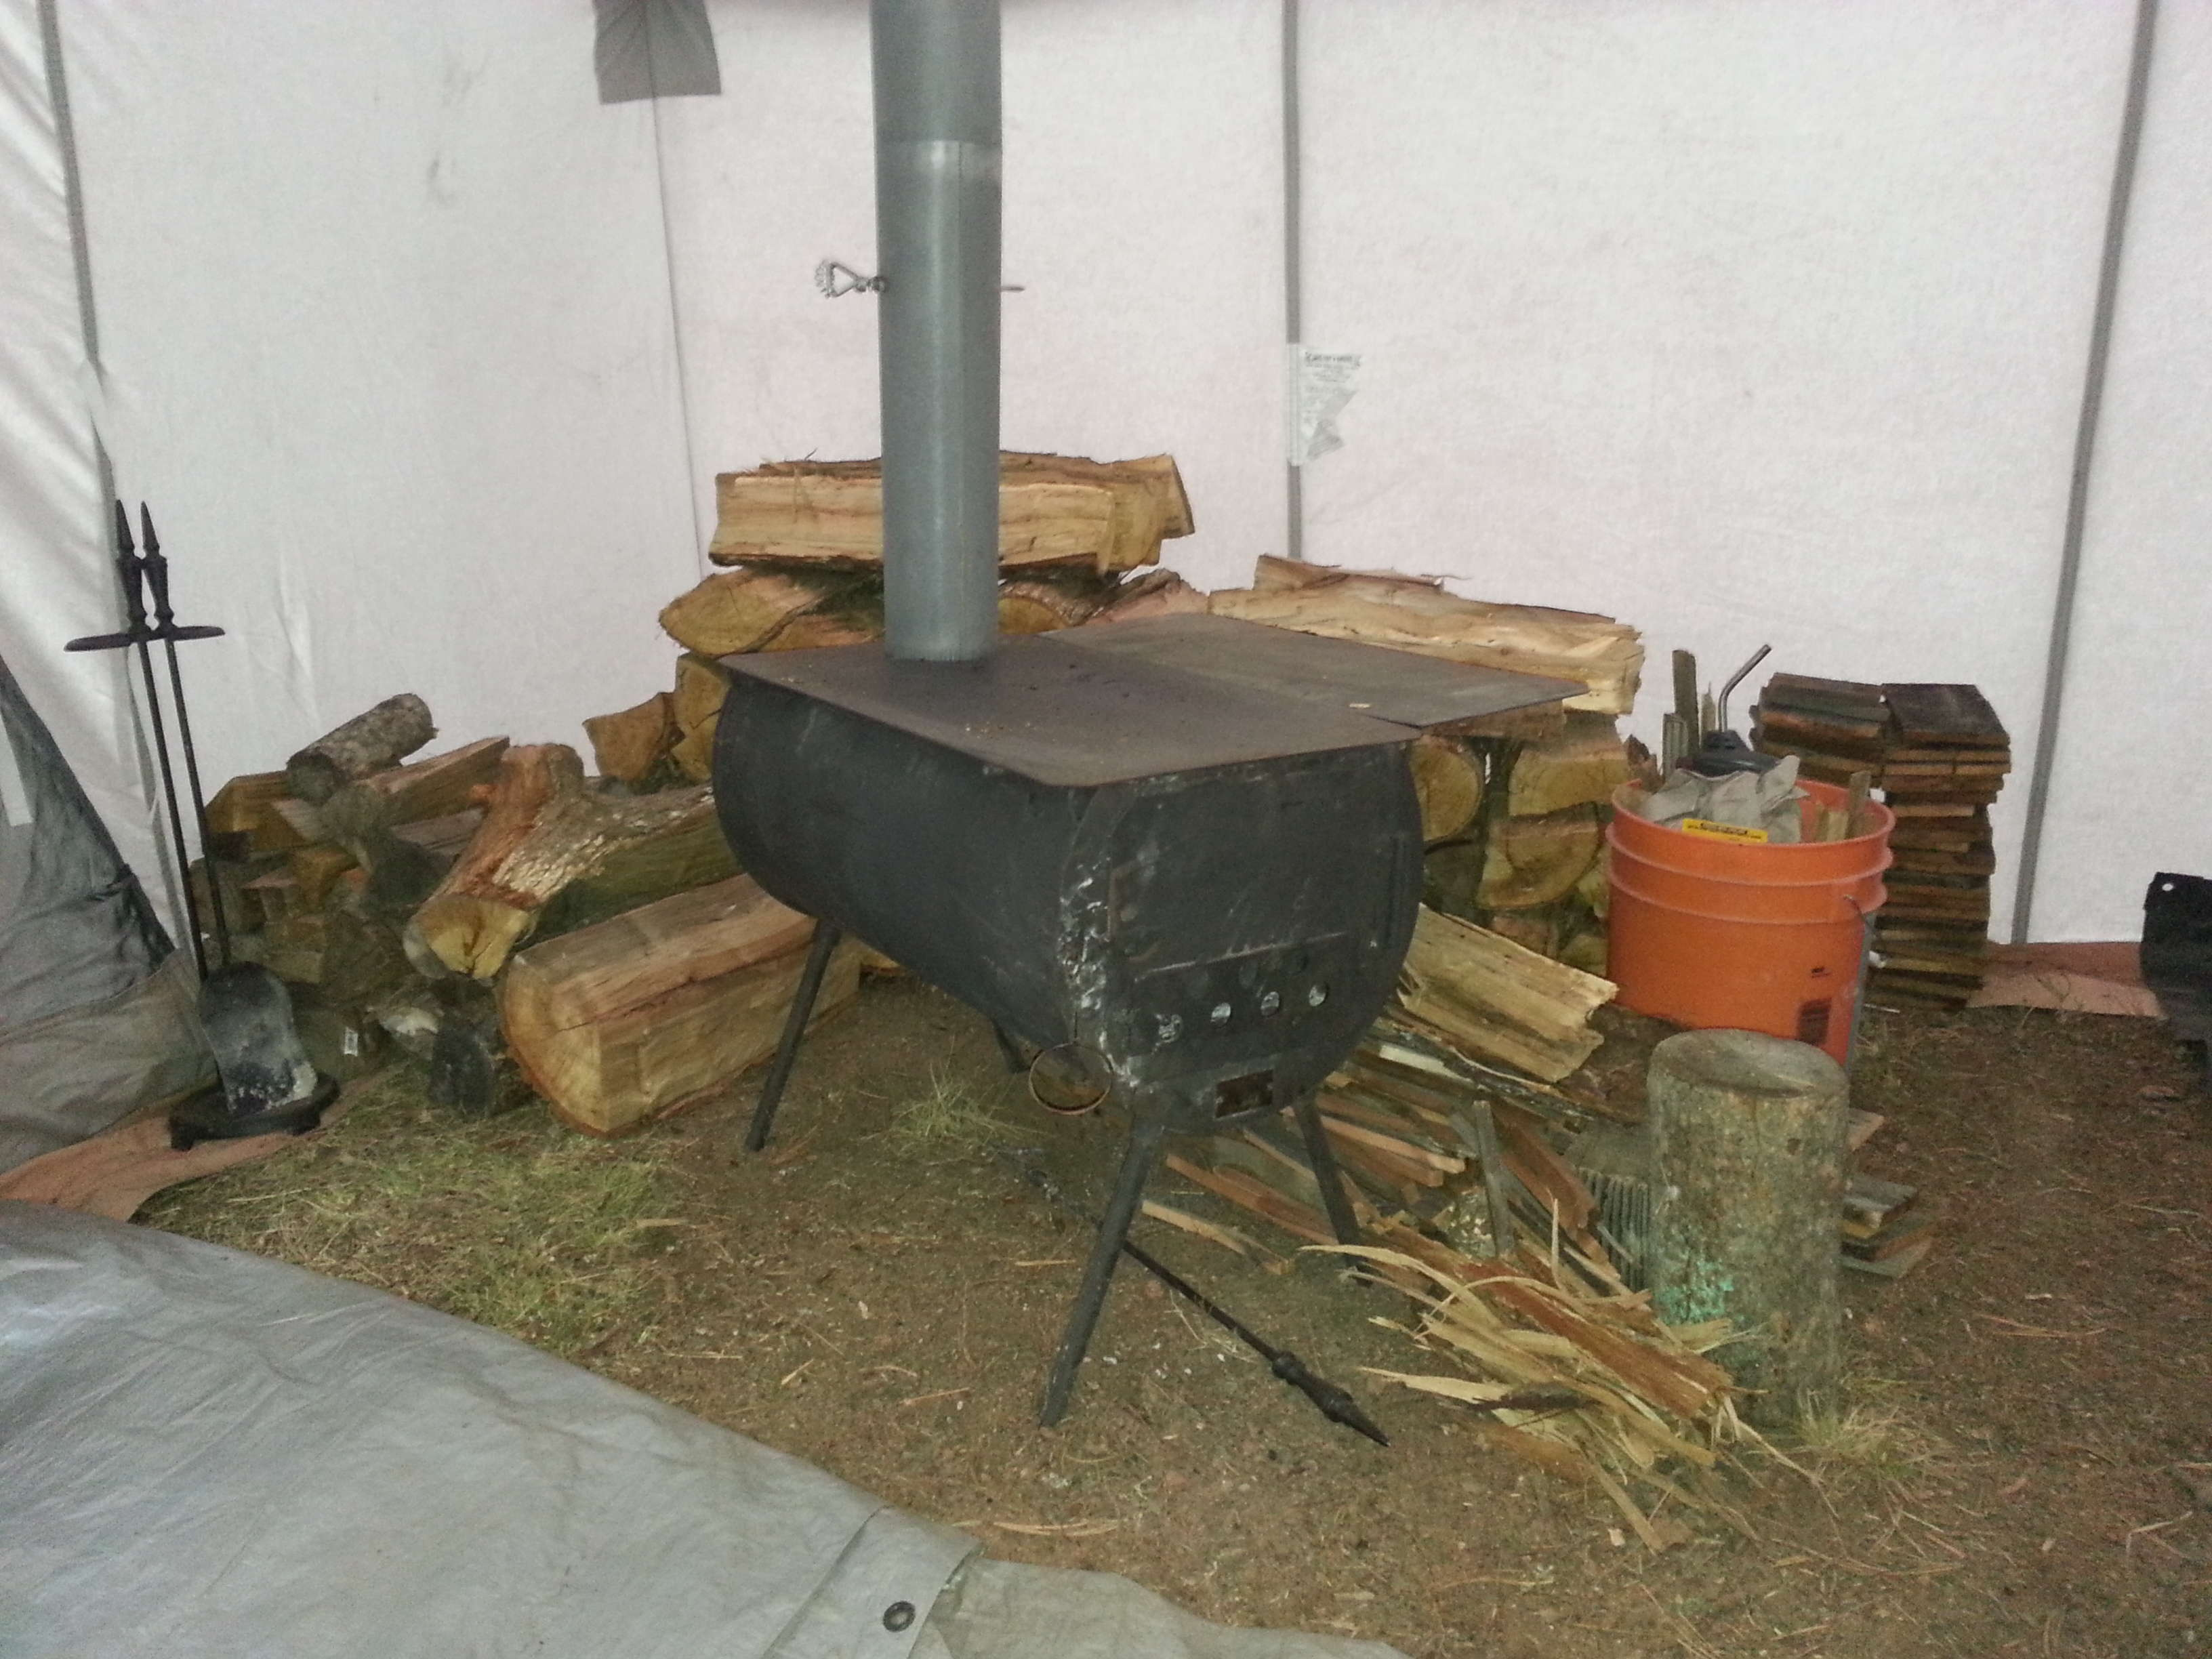 [Linked Image] & Wall tent stove? - 24hourcampfire